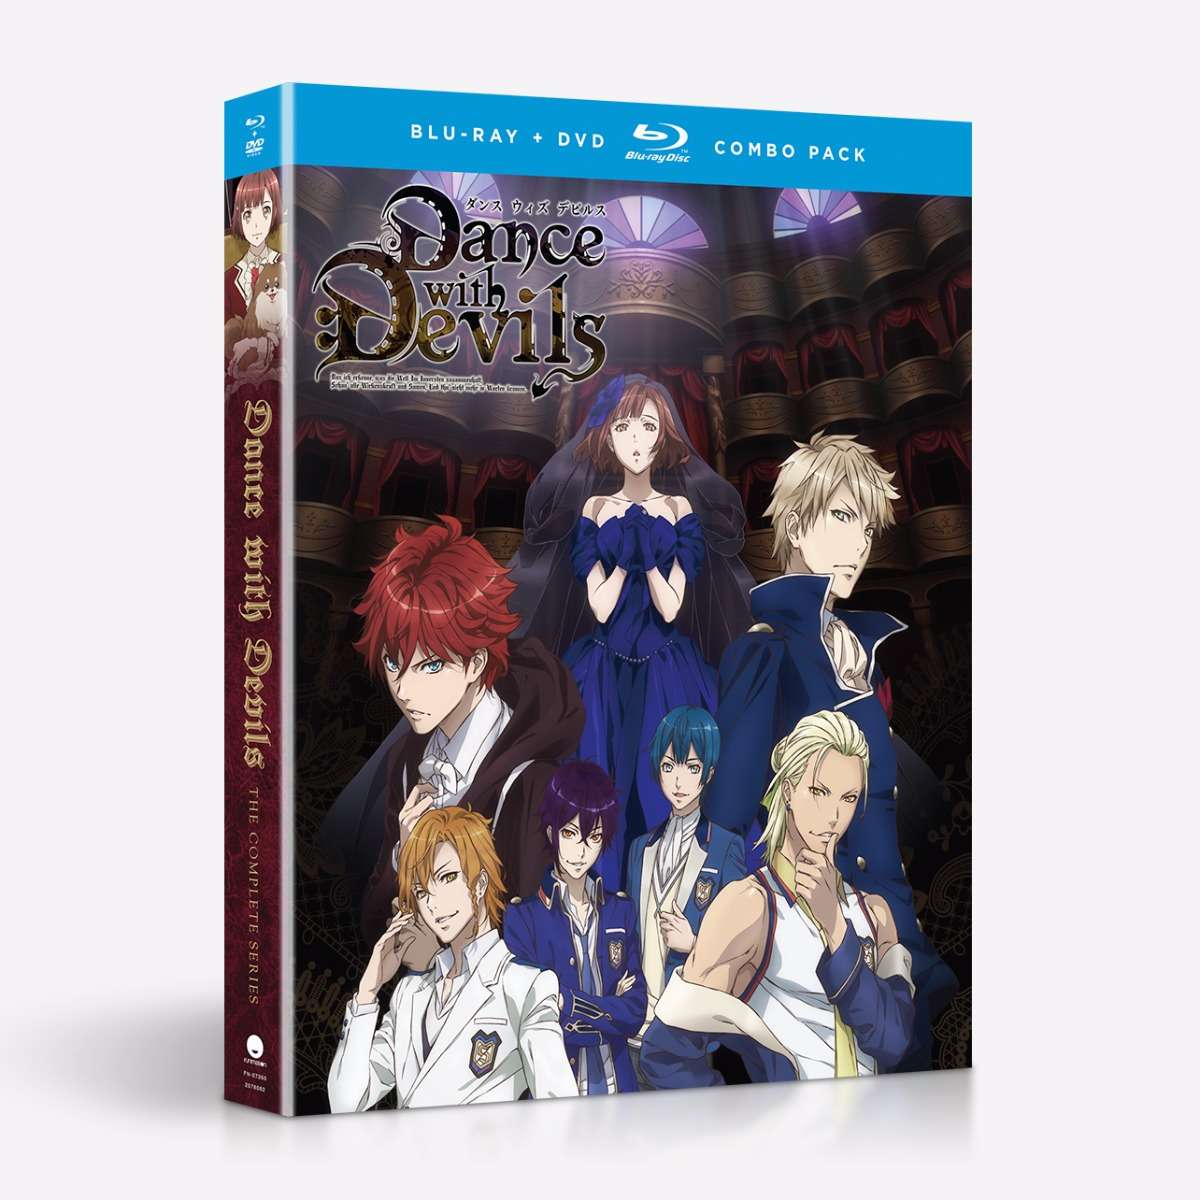 The Complete Series - BD/DVD Combo SALE